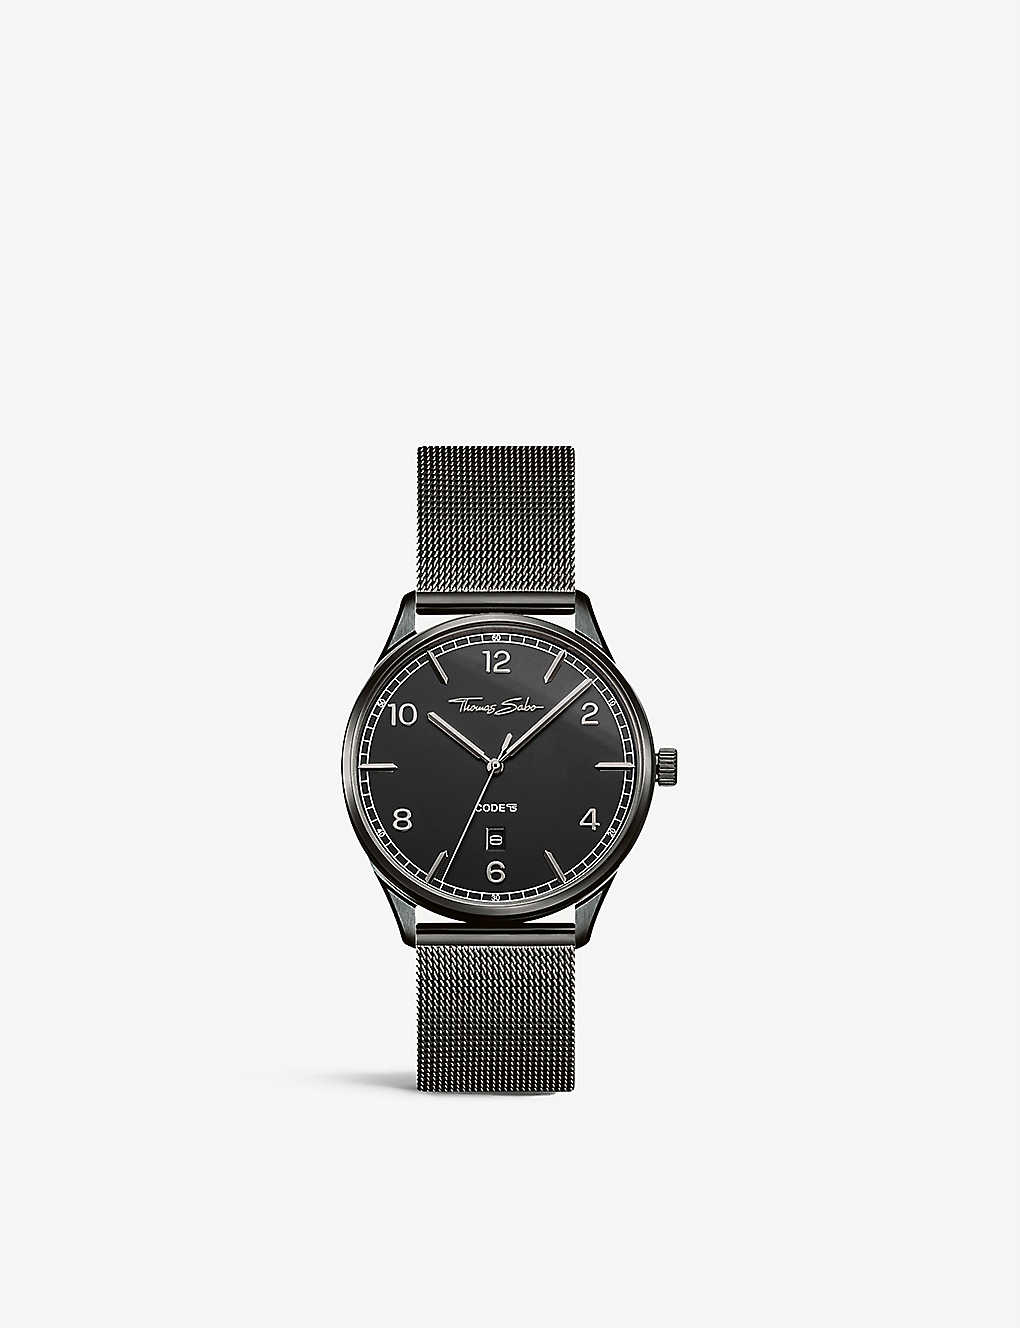 THOMAS SABO: WA0342202203 Code TS ion-plated stainless steel watch